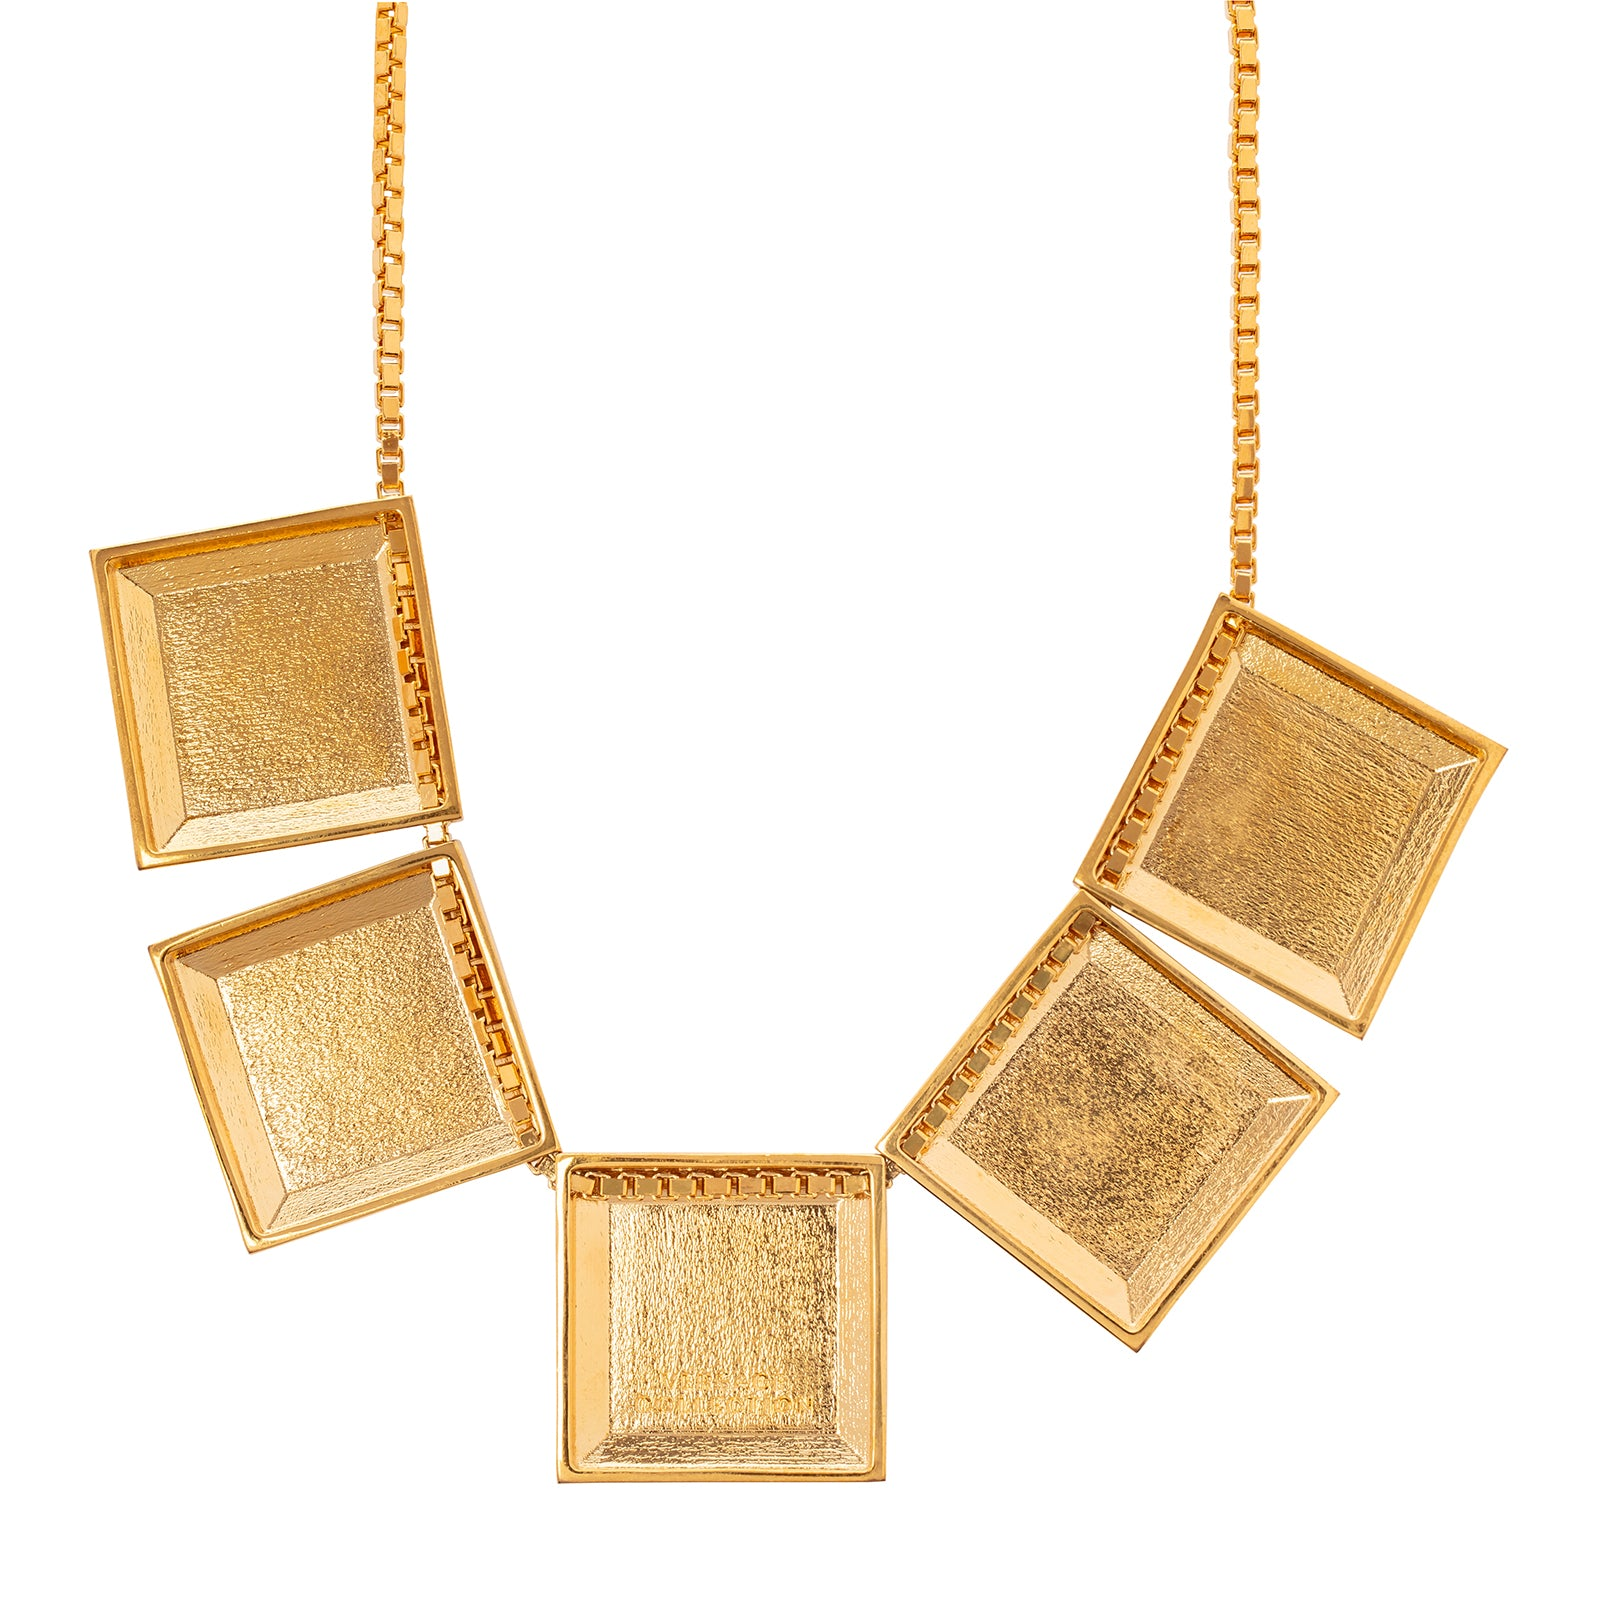 Antique & Vintage Jewelry Versace Medusa Square Plate Necklace - Necklaces - Broken English Jewelry